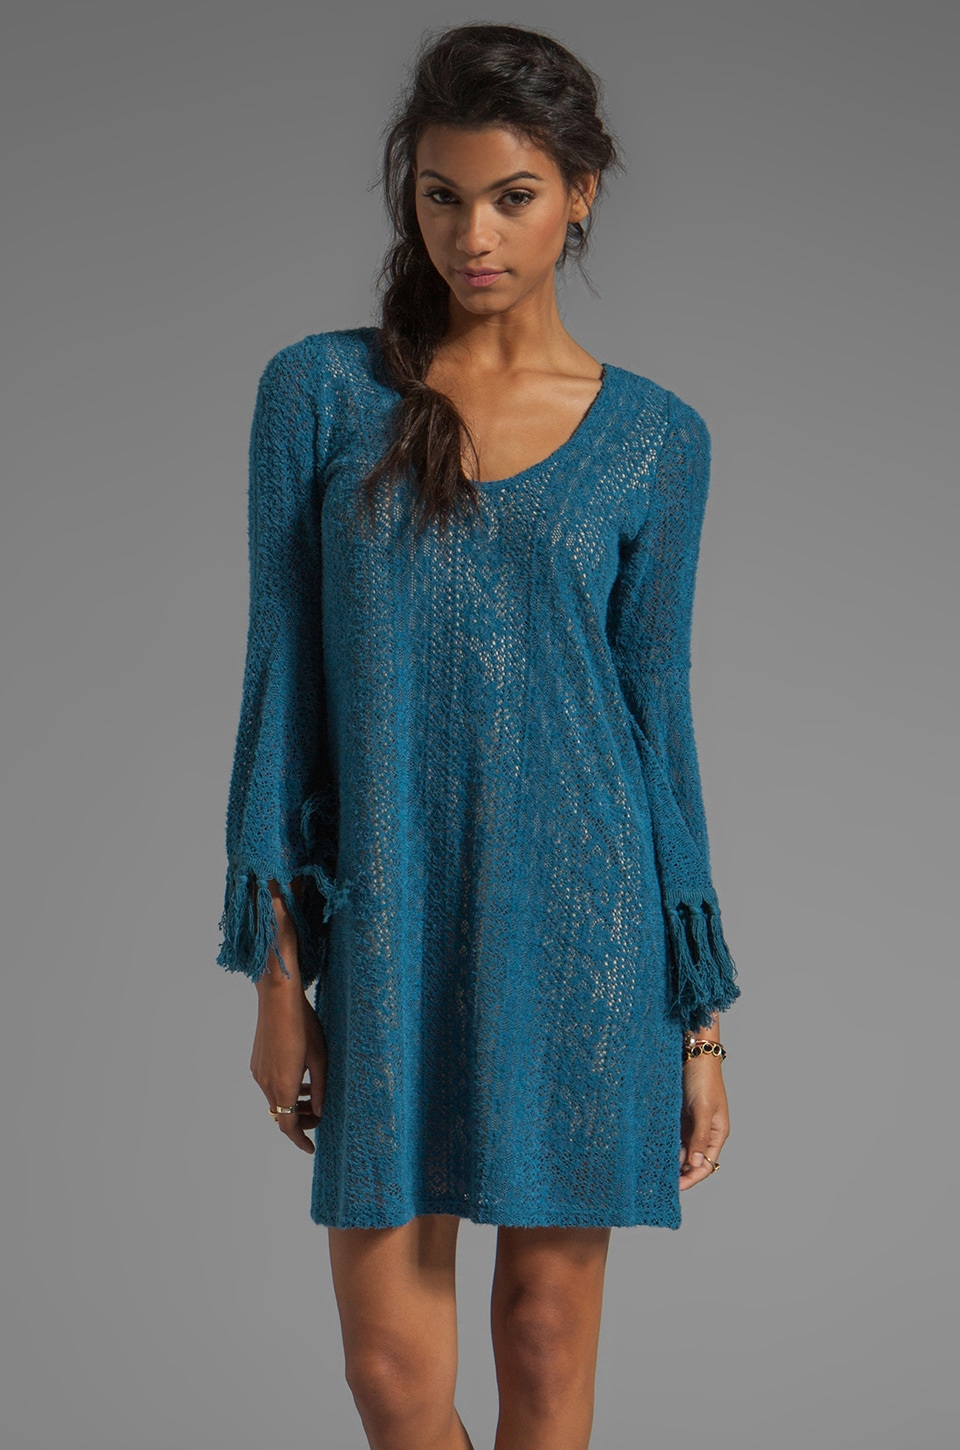 VAVA by Joy Han Chelsea Bell Sleeve Dress in Blue